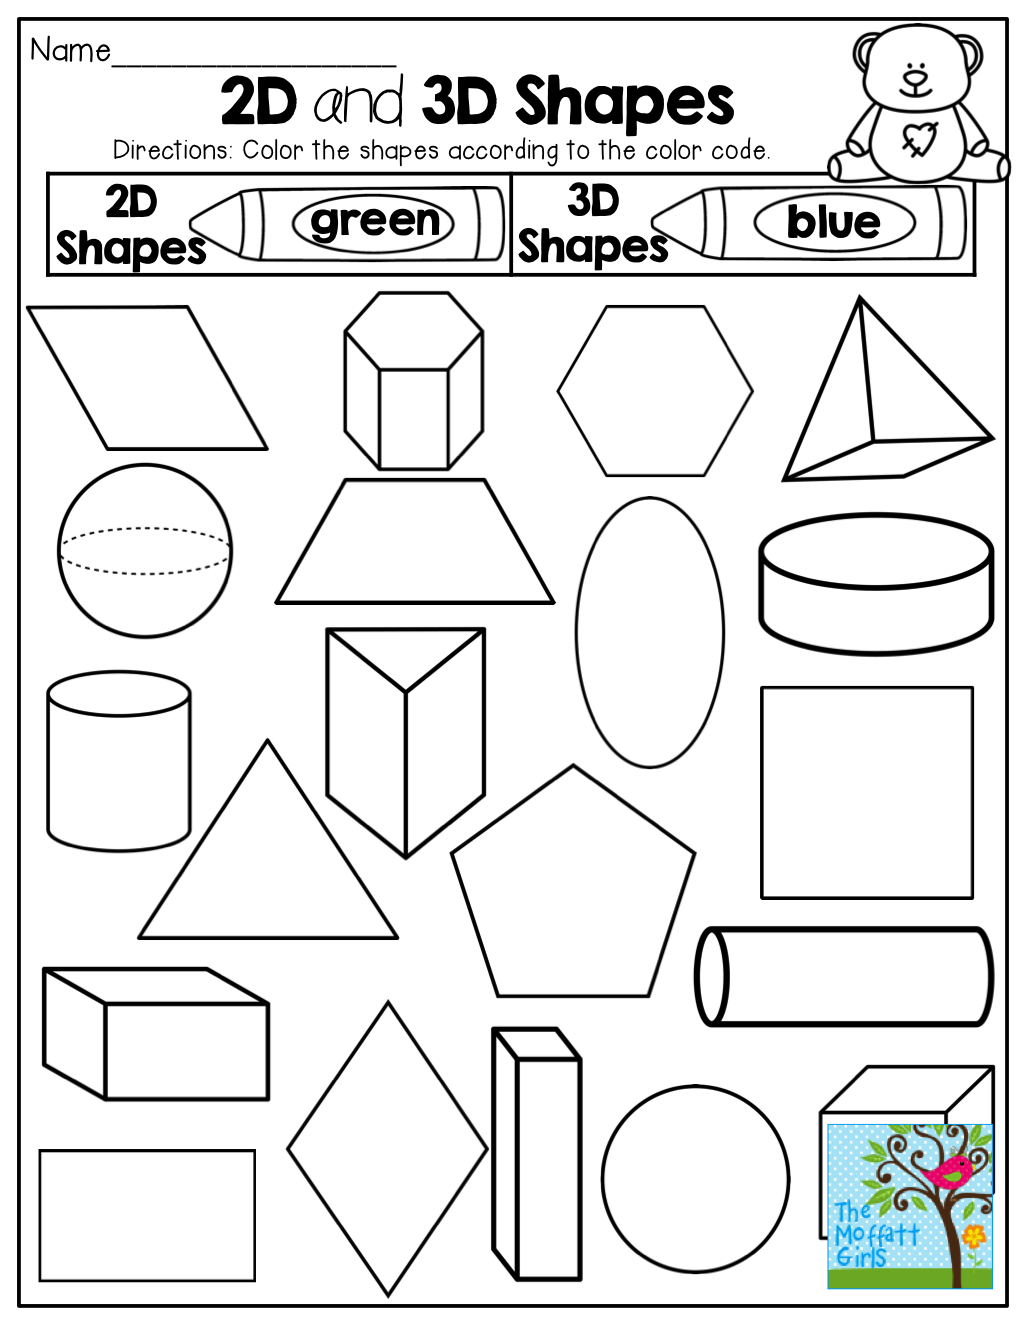 2 D And 3 D Shapes Color By The Code Tons Of Fun Printables Shapes Worksheet Kindergarten Shapes Kindergarten 3d Shapes Kindergarten